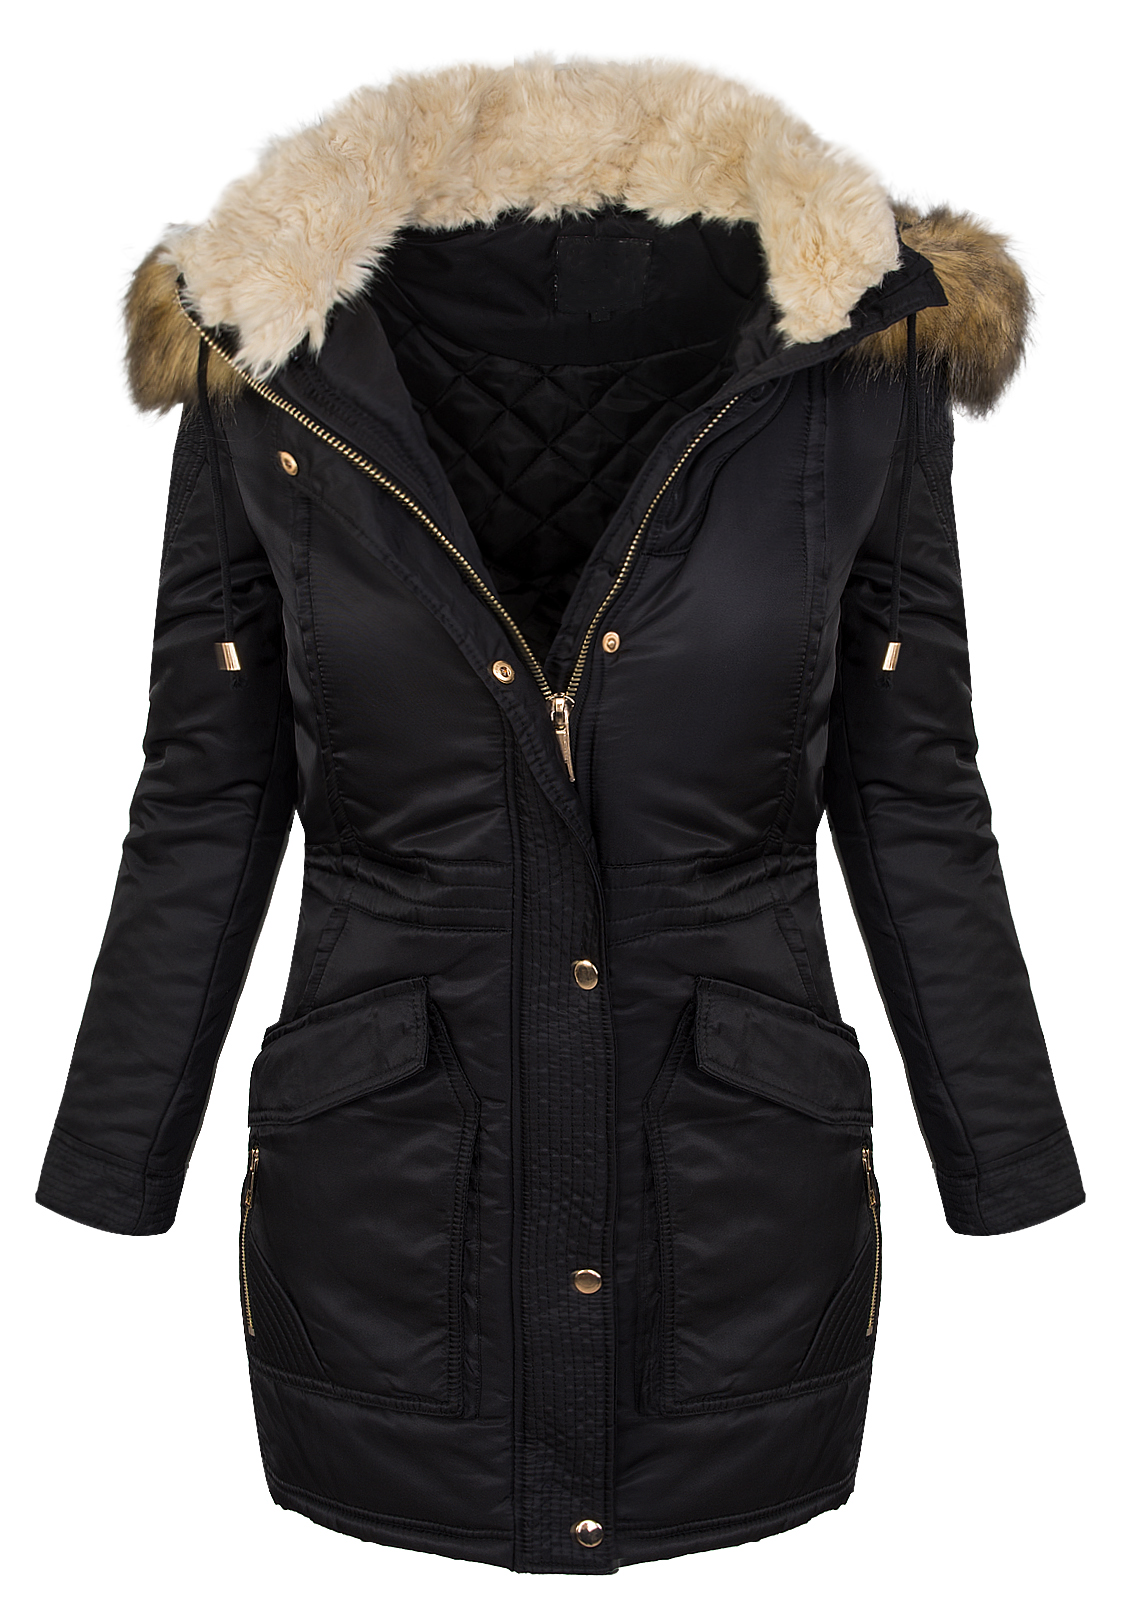 designer damen winter mantel jacke parka lang winterjacke. Black Bedroom Furniture Sets. Home Design Ideas